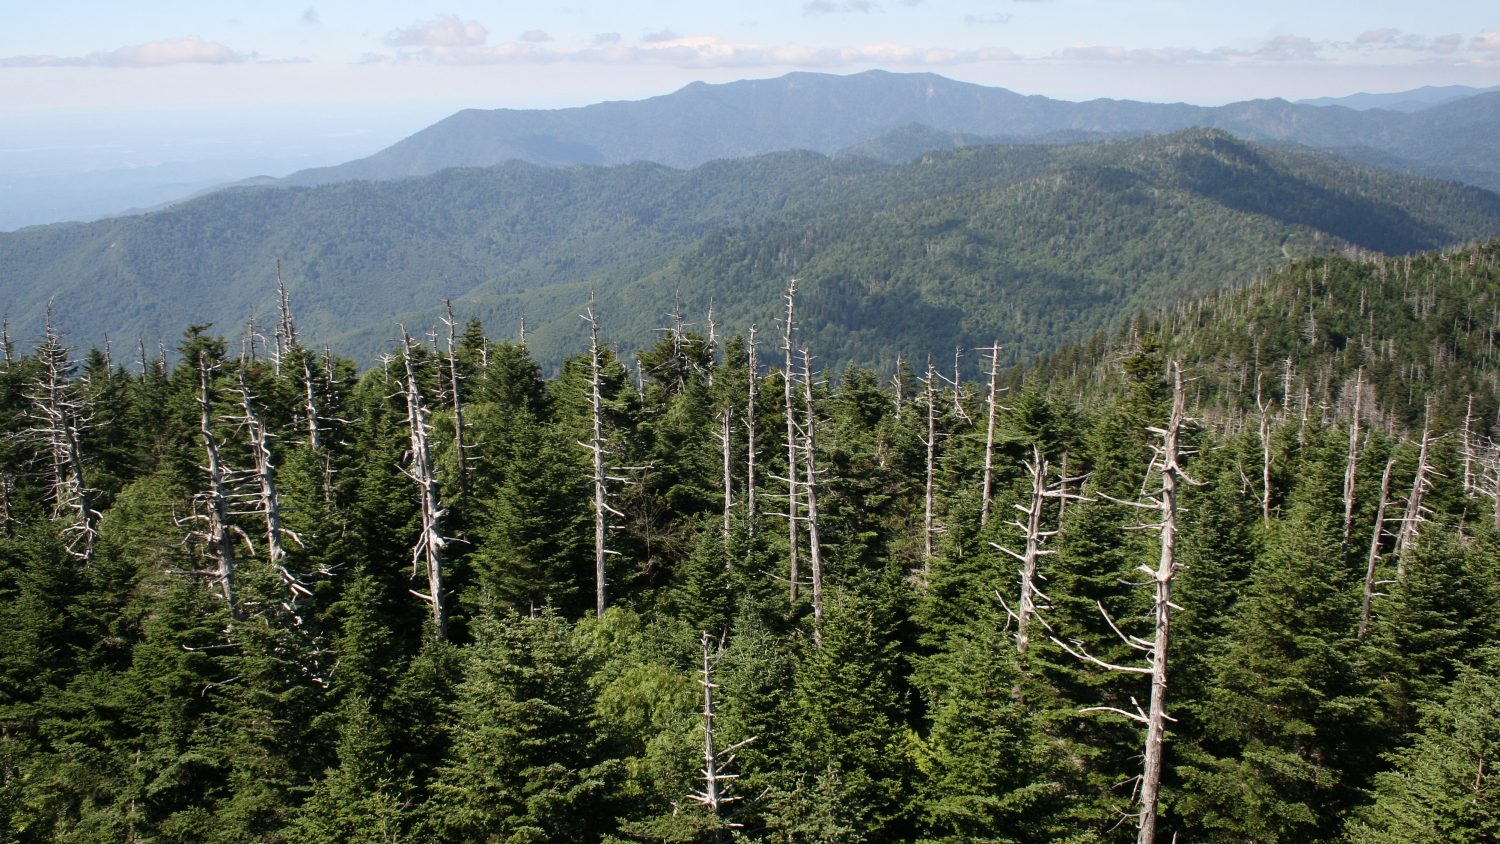 How Tree Diversity Regulates Invading Forest Pests